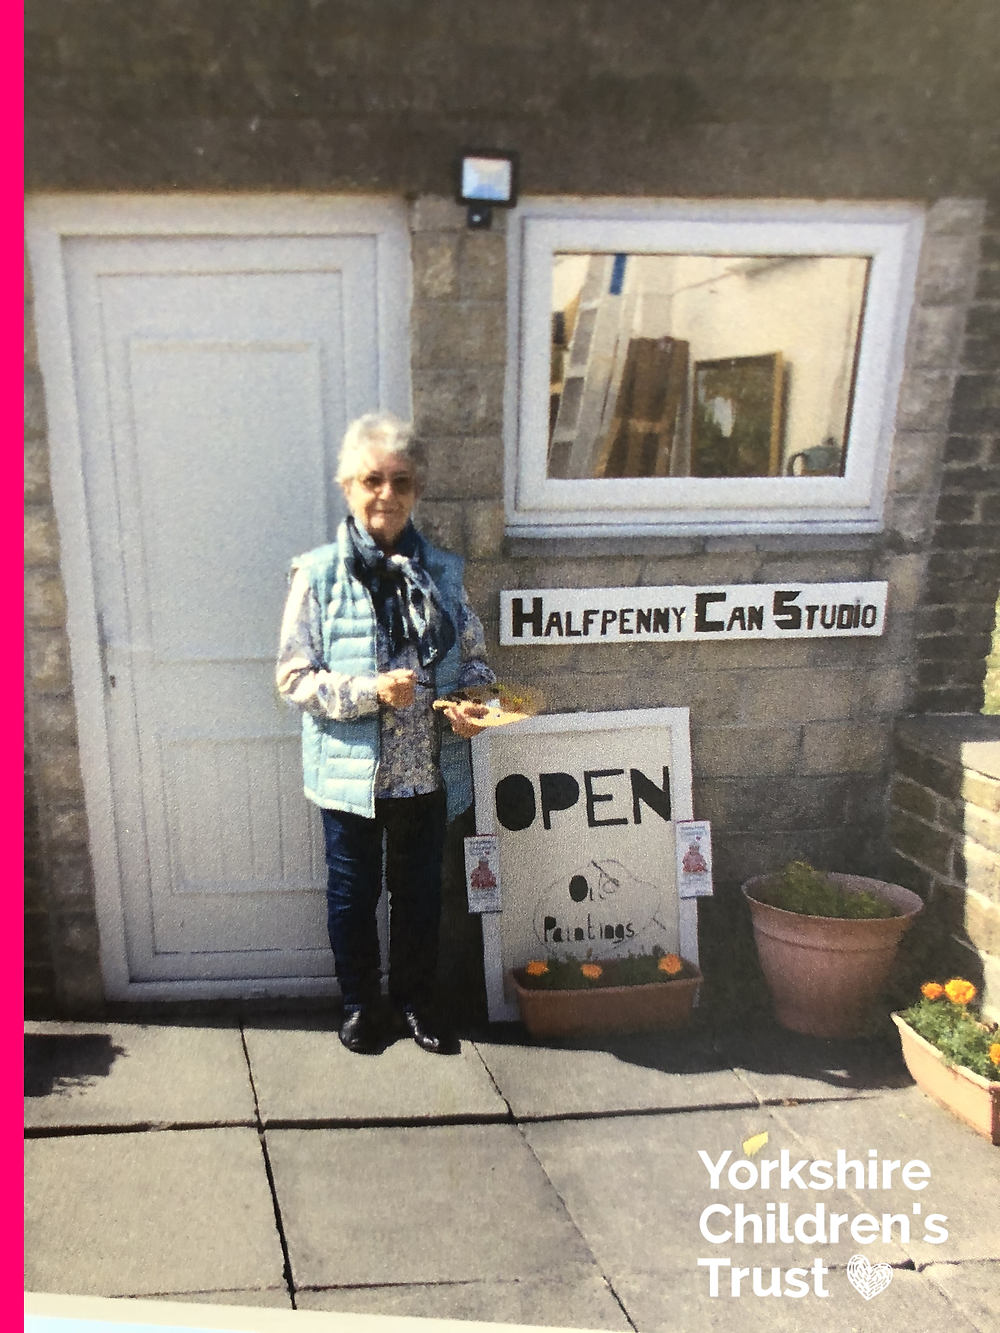 Noeleen Warren, Painting Lady offering commissions to raise funds for Yorkshire Children's Trust